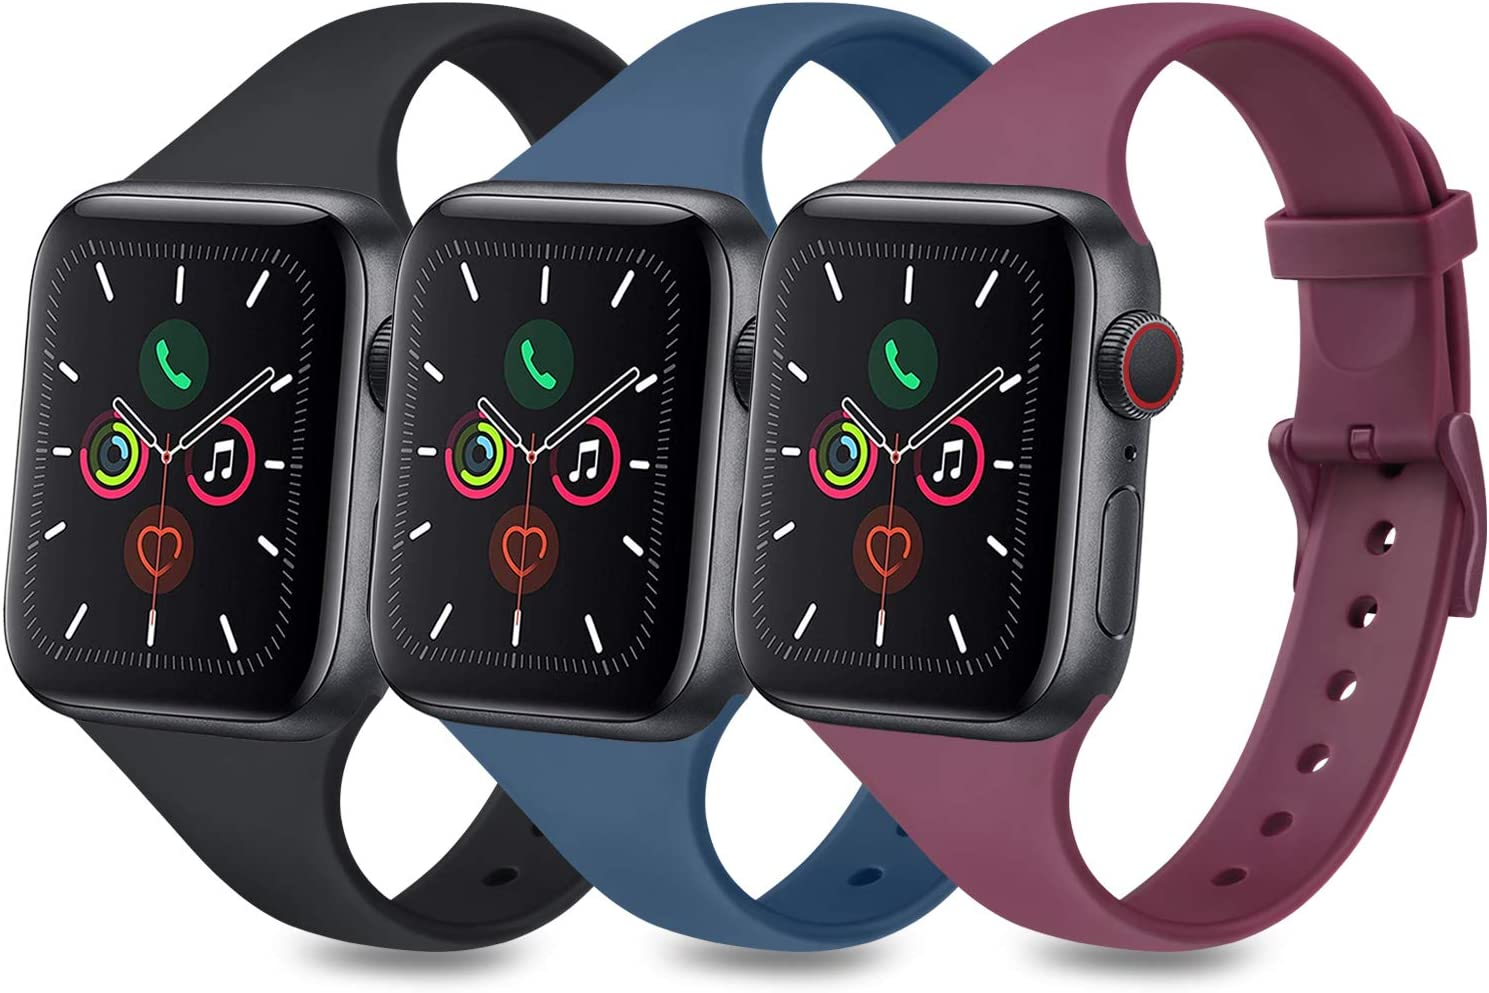 3 Pack Sport Bands Compatible with Apple Watch Band 38mm 40mm 42mm 44mm, Slim Thin Narrow Soft Silicone Replacement Strap for iWatch Series 6 5 4 3 2 1 SE (Black/Navy Blue/Wine Red, 38mm/40mm-S/M)